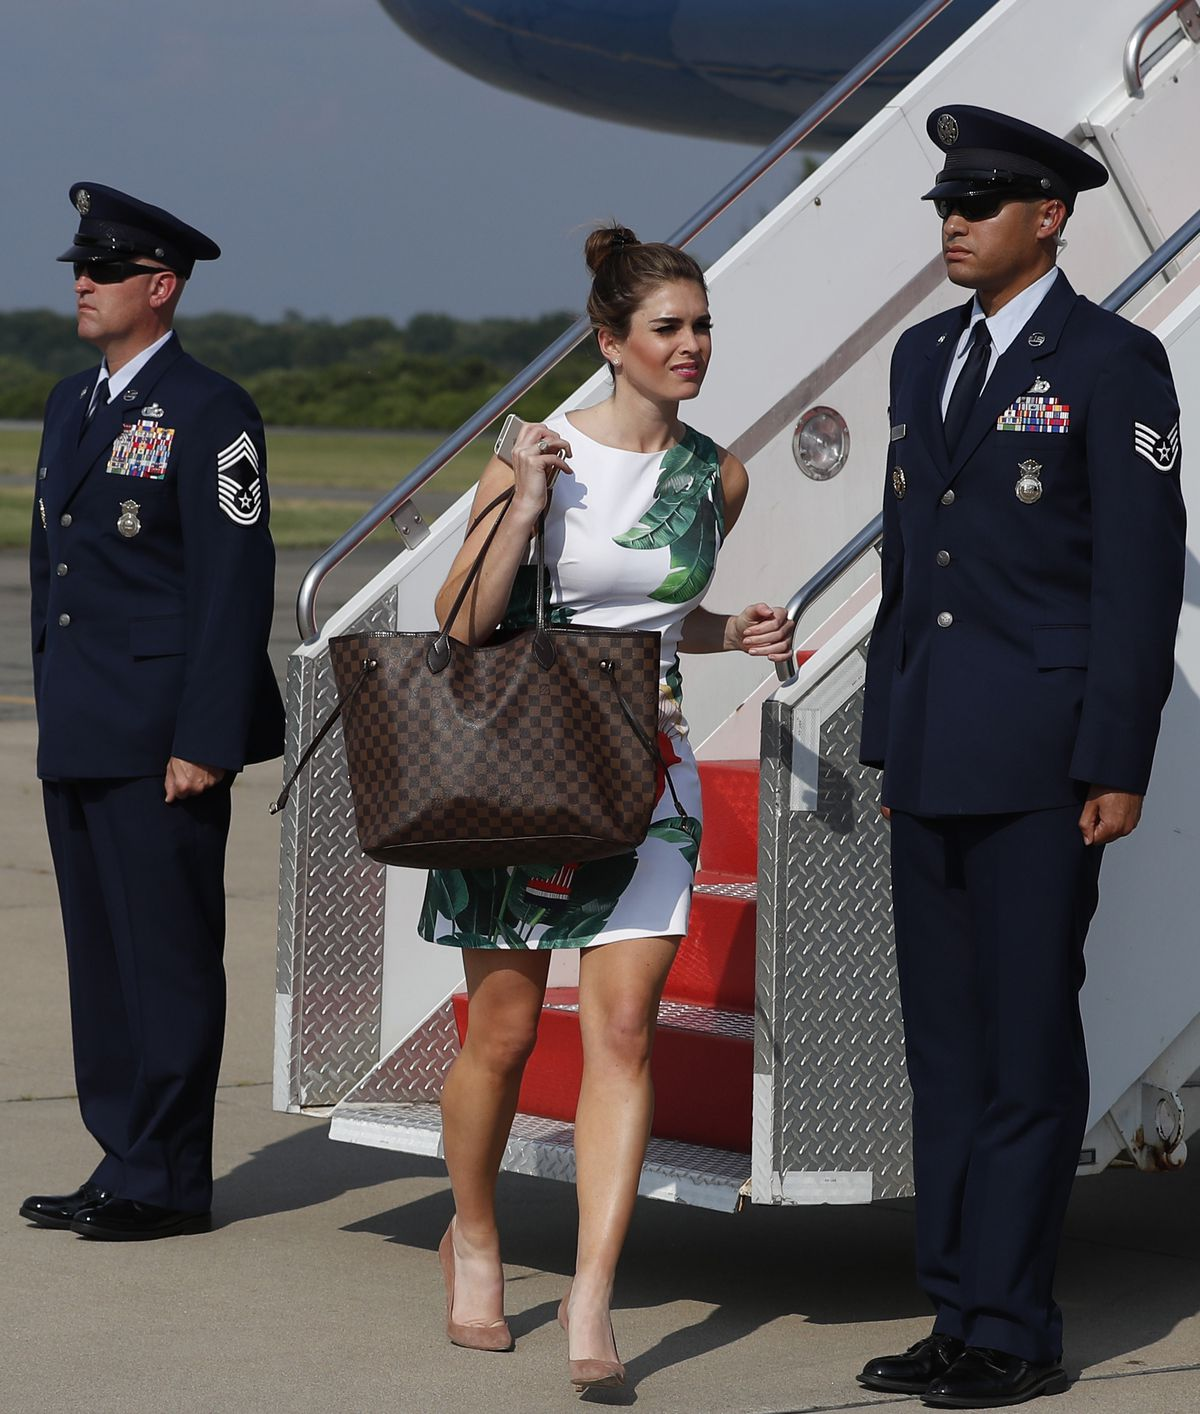 Hope Hicks arrives on Air Force One at Morristown (N.J.) Municipal Airport earlier this year en route to Trump National Golf Club. | Associated Press file photo